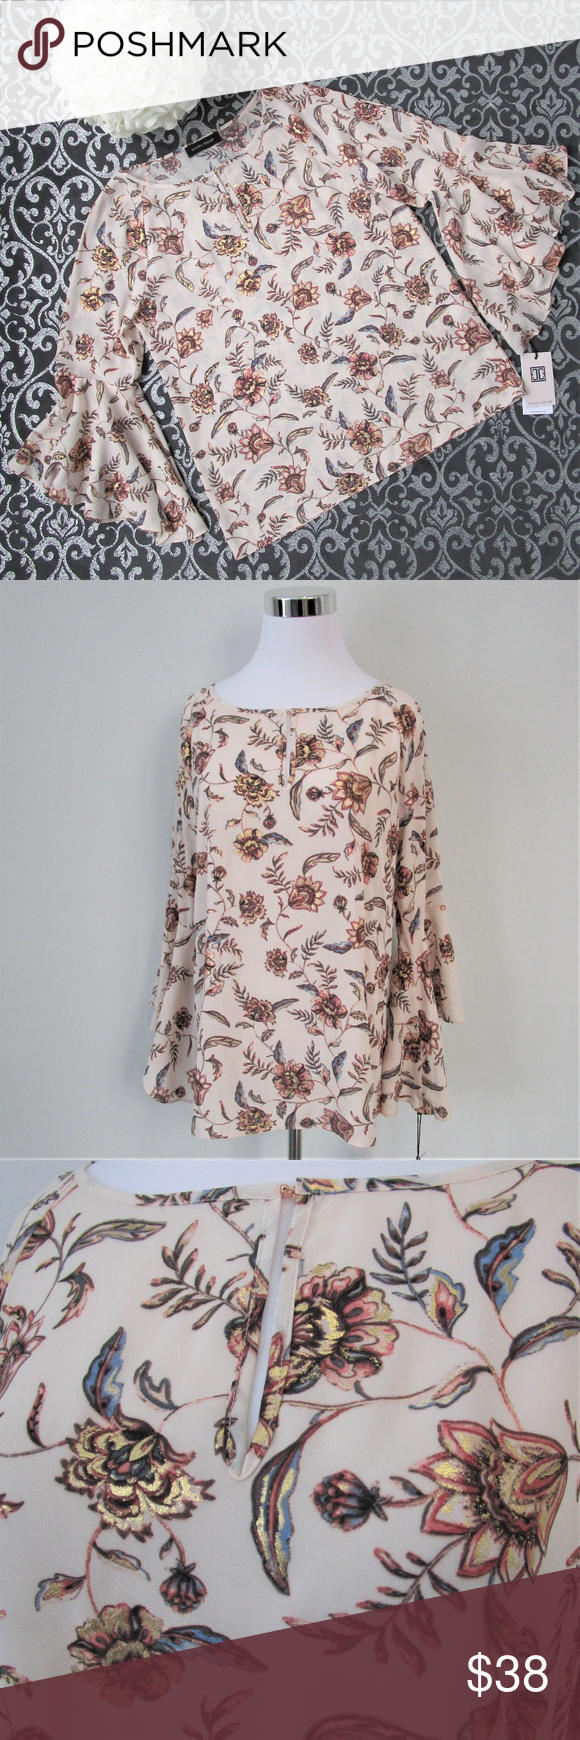 NWT Metallic Rose Gold Floral Bell Sleeve Blouse Simply Stunning! Flowy 51ce02f2b